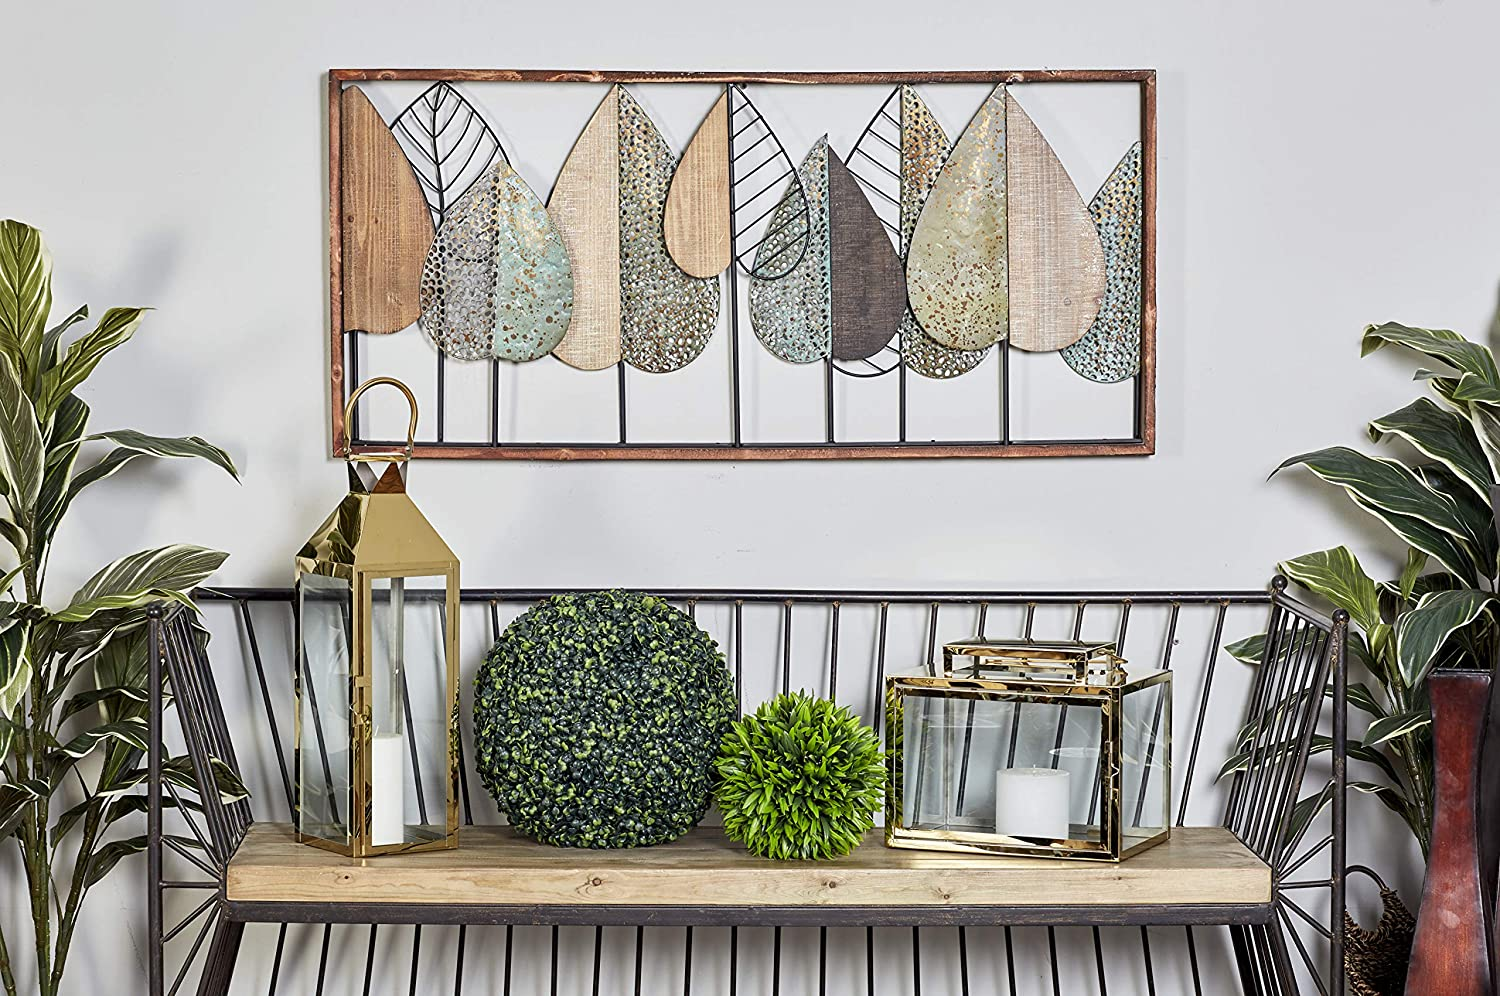 Deco 79 Natural Rectangular Iron and Wood Stylized Leaf Wall Decor, 47